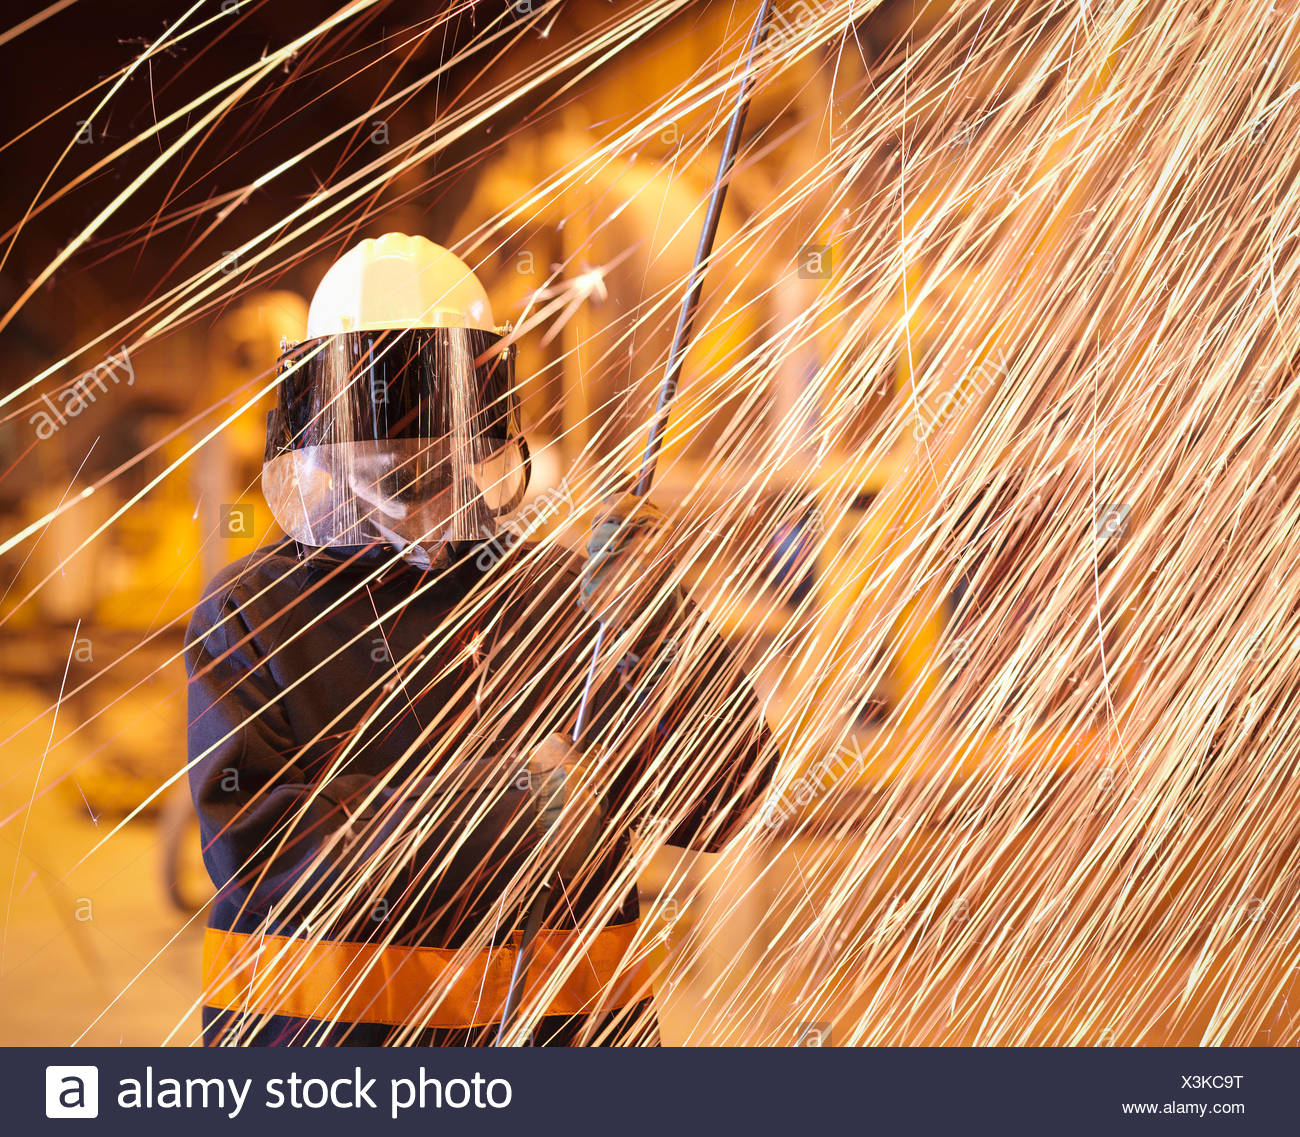 Steelworker holding sample lance behind sparks in steelworks - Stock Image